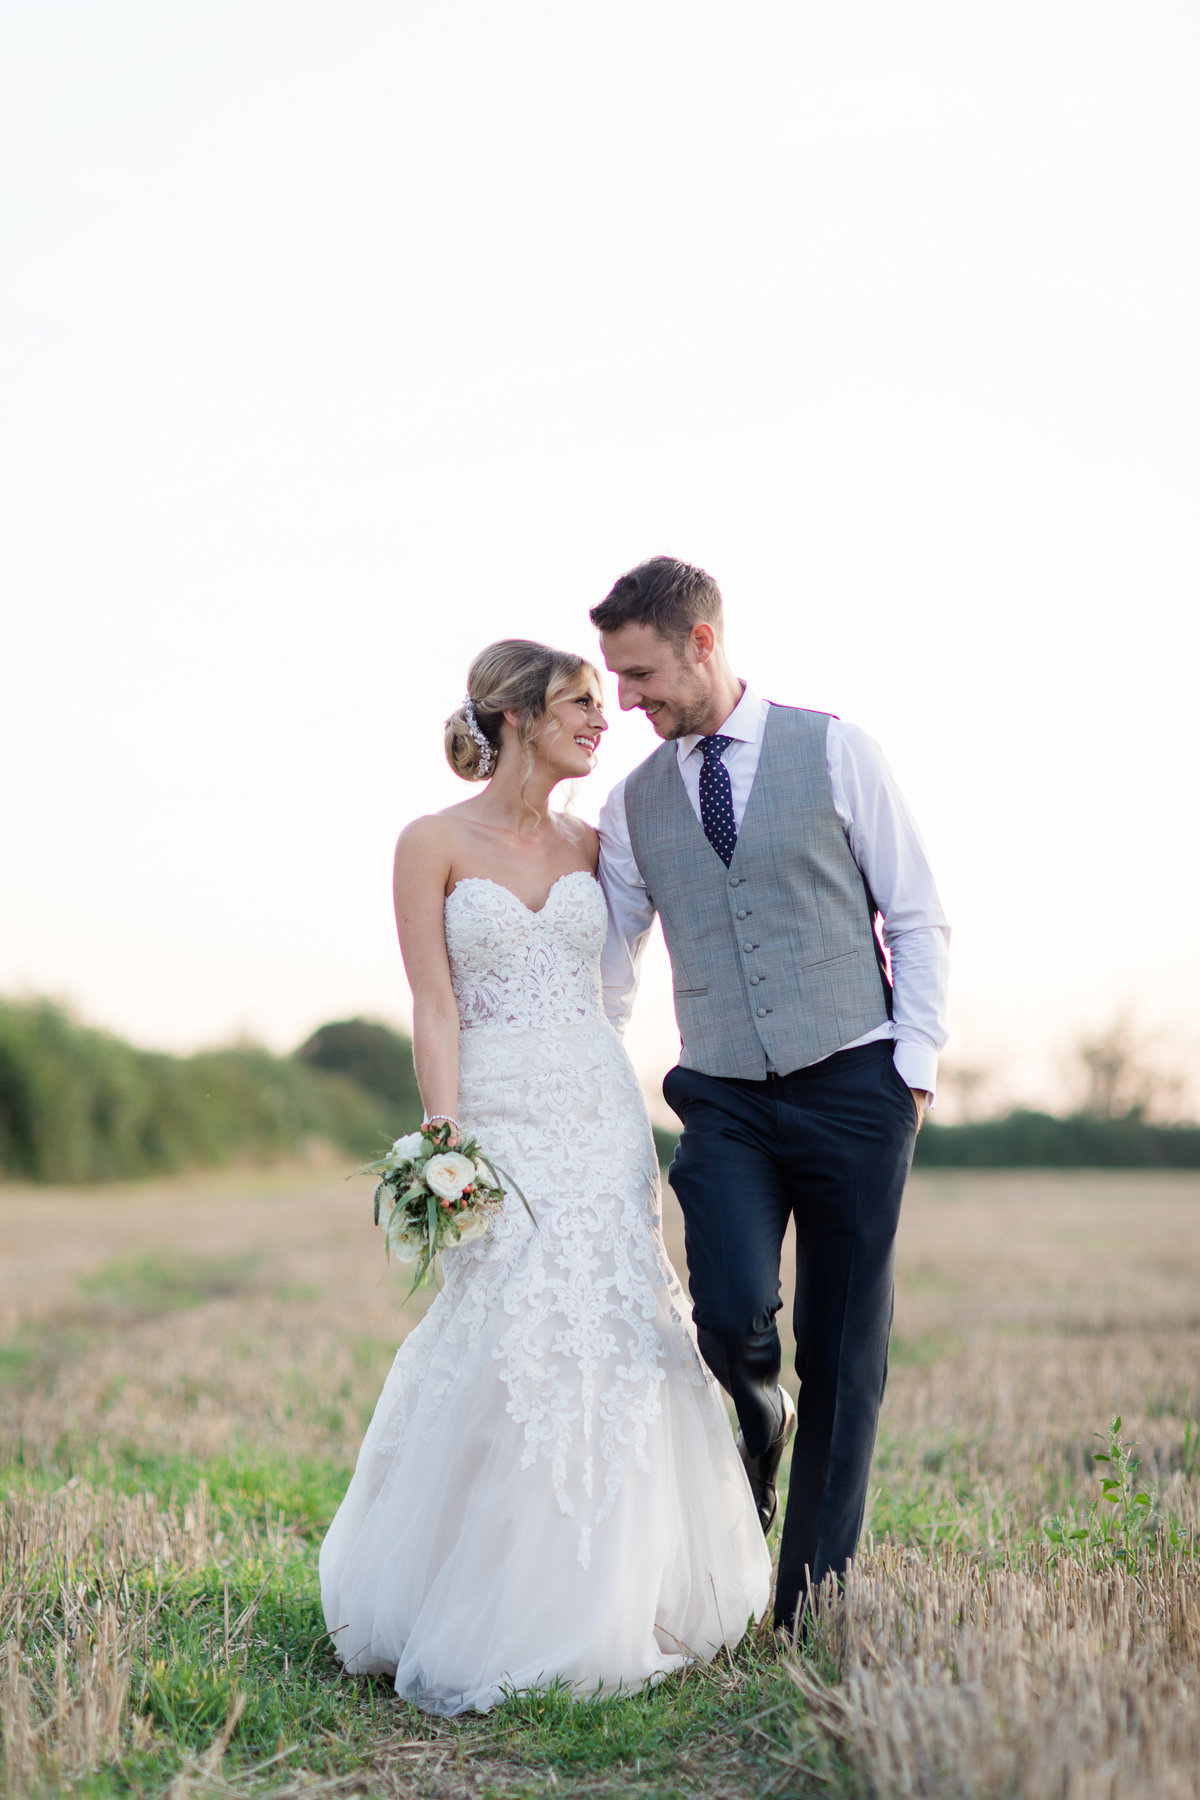 Adorlee-066-TL-southend-barns-wedding-photographer